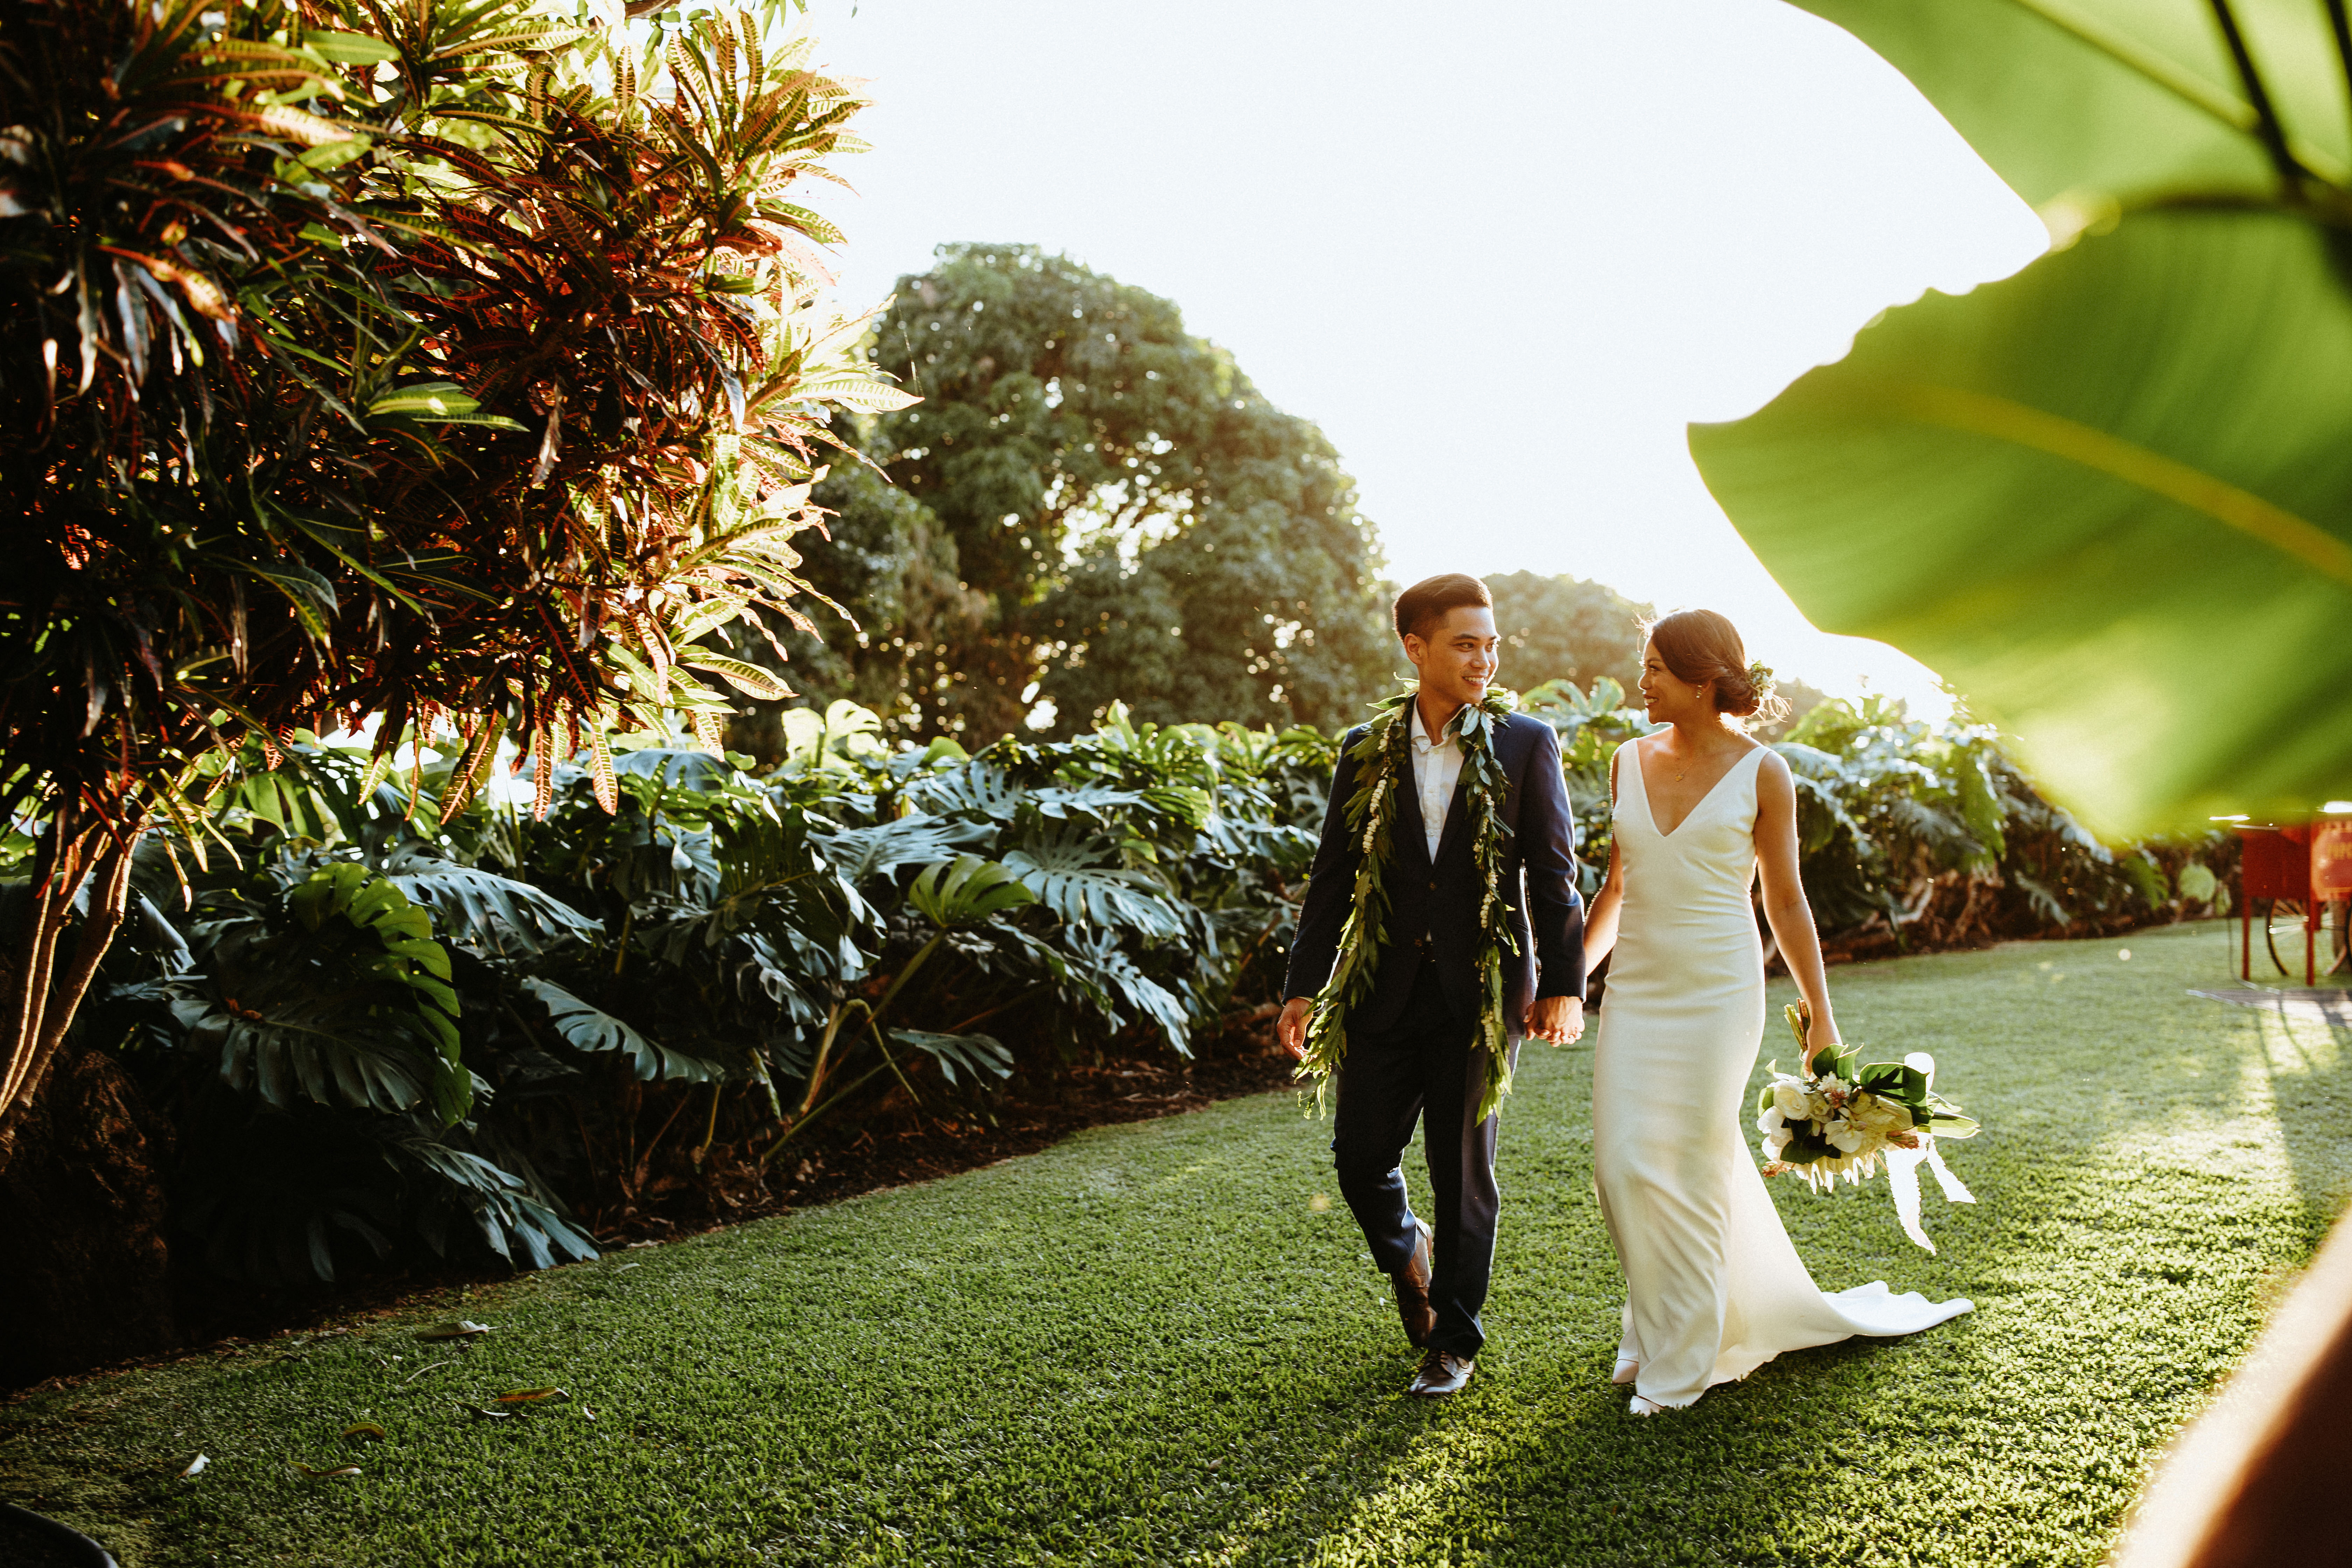 Bride and Groom Embrace Outdoors